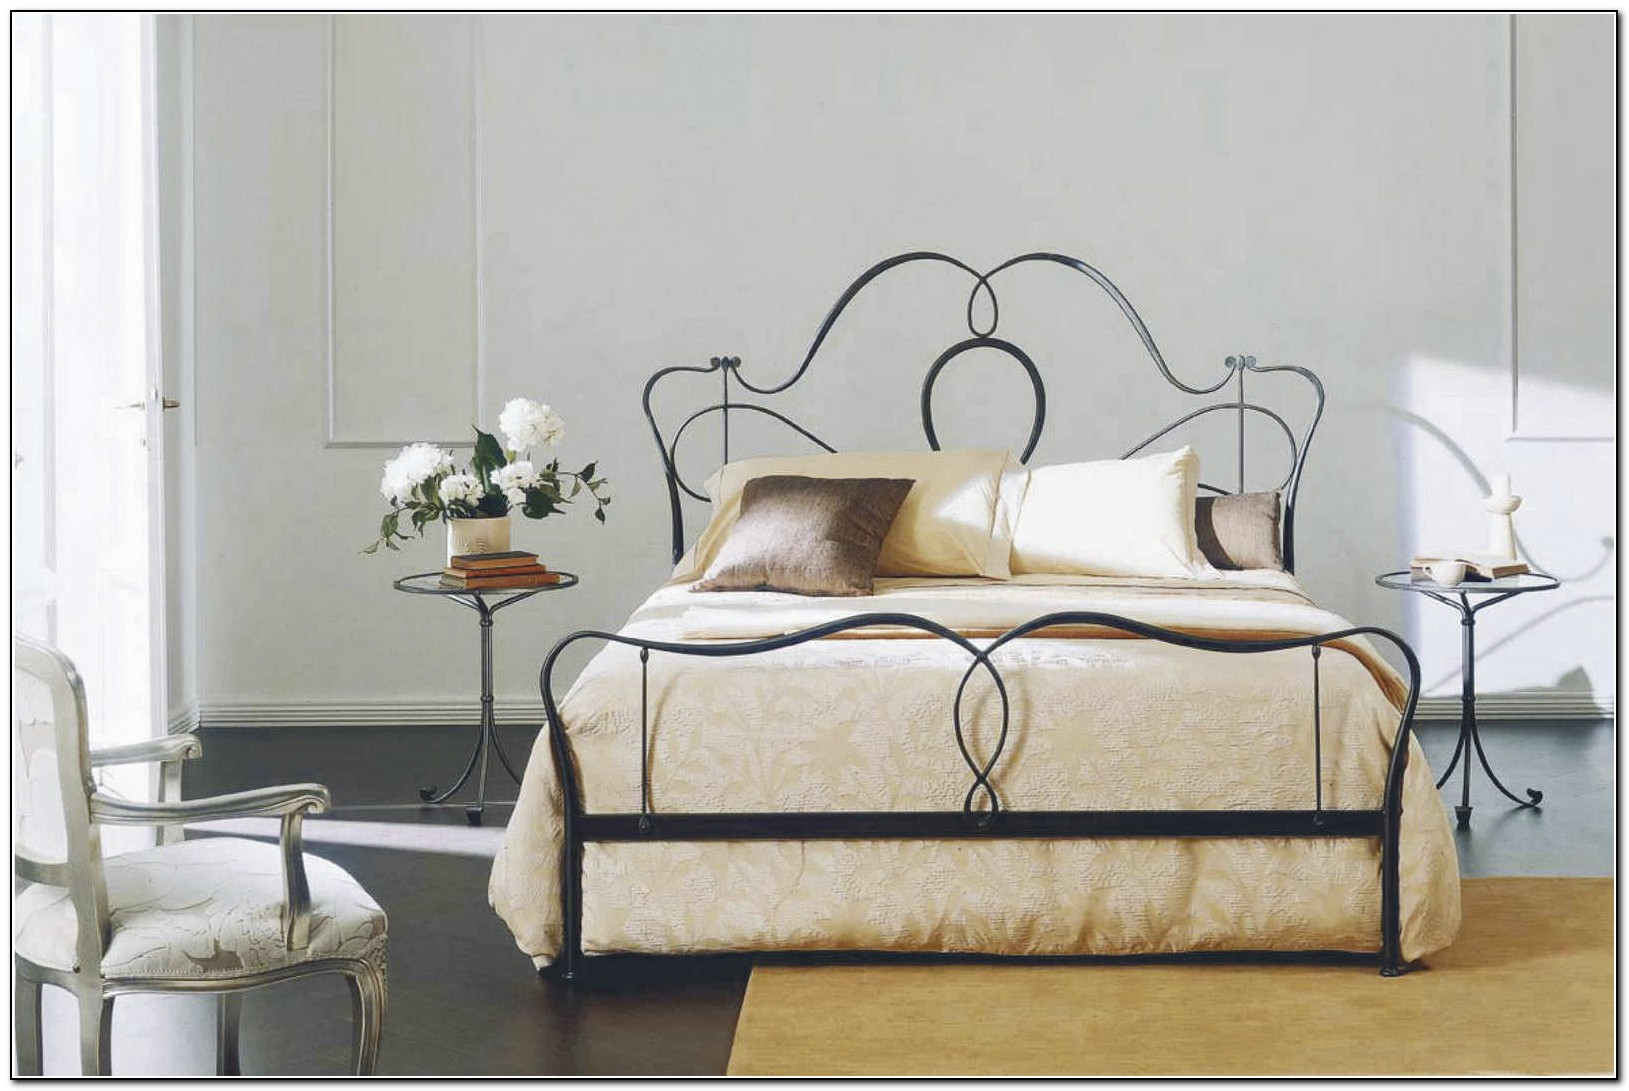 Wrought iron bed ikea beds home design ideas for Iron bed with storage